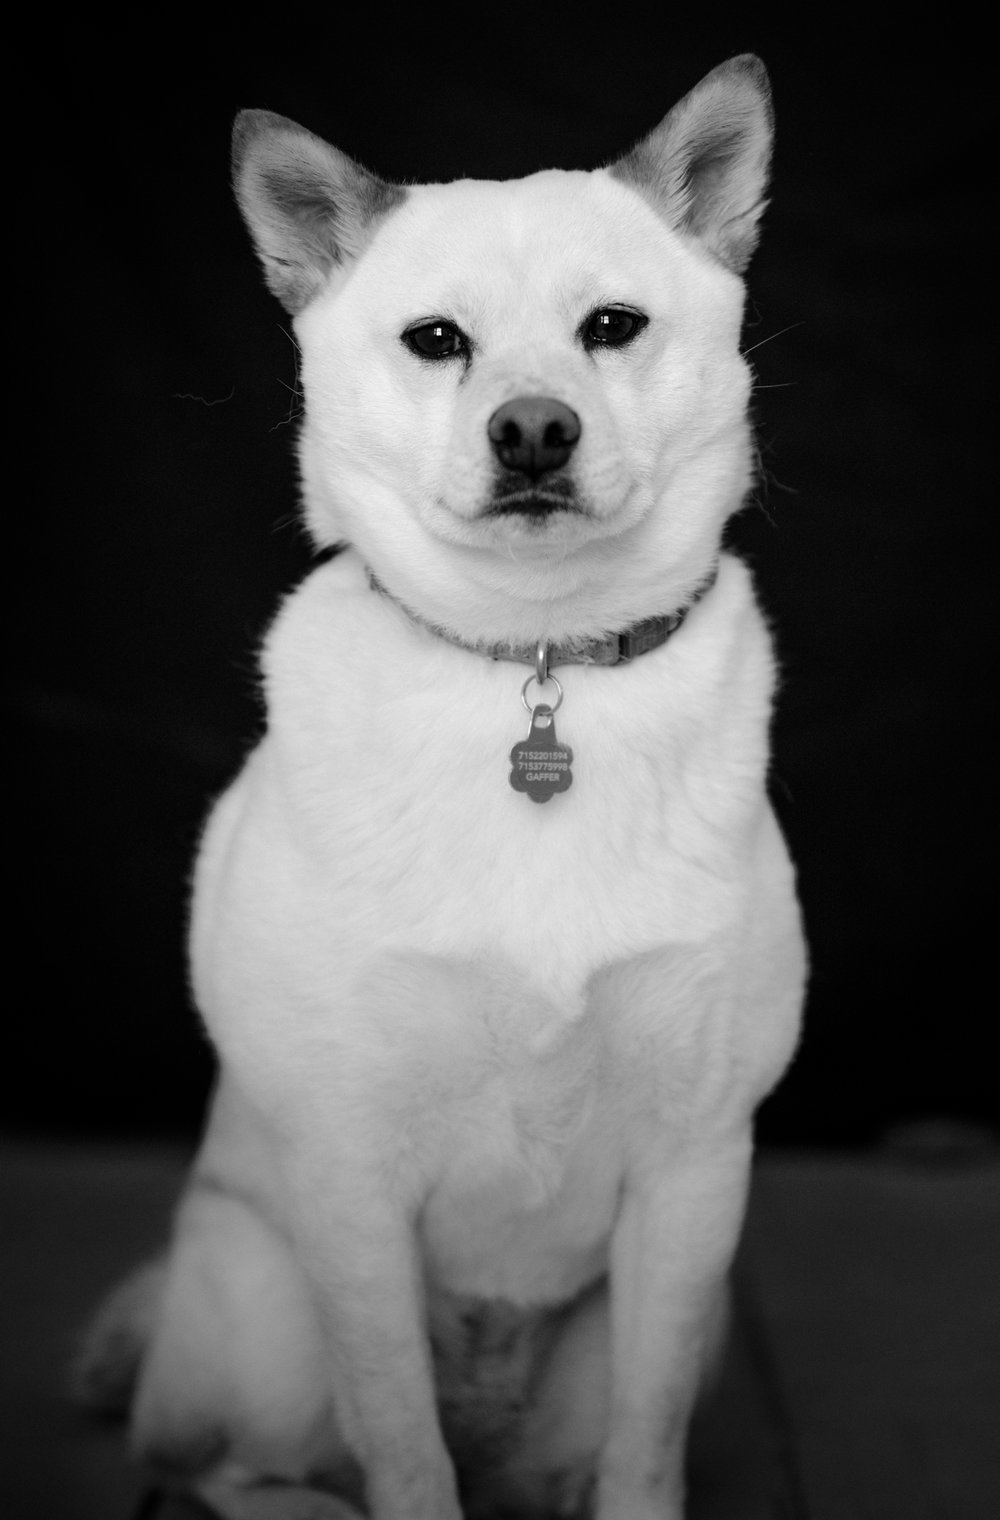 Luna - I am named after the moon. I am also the perfect dog model for any photoshoot. I am also guaranteed to break your heart.